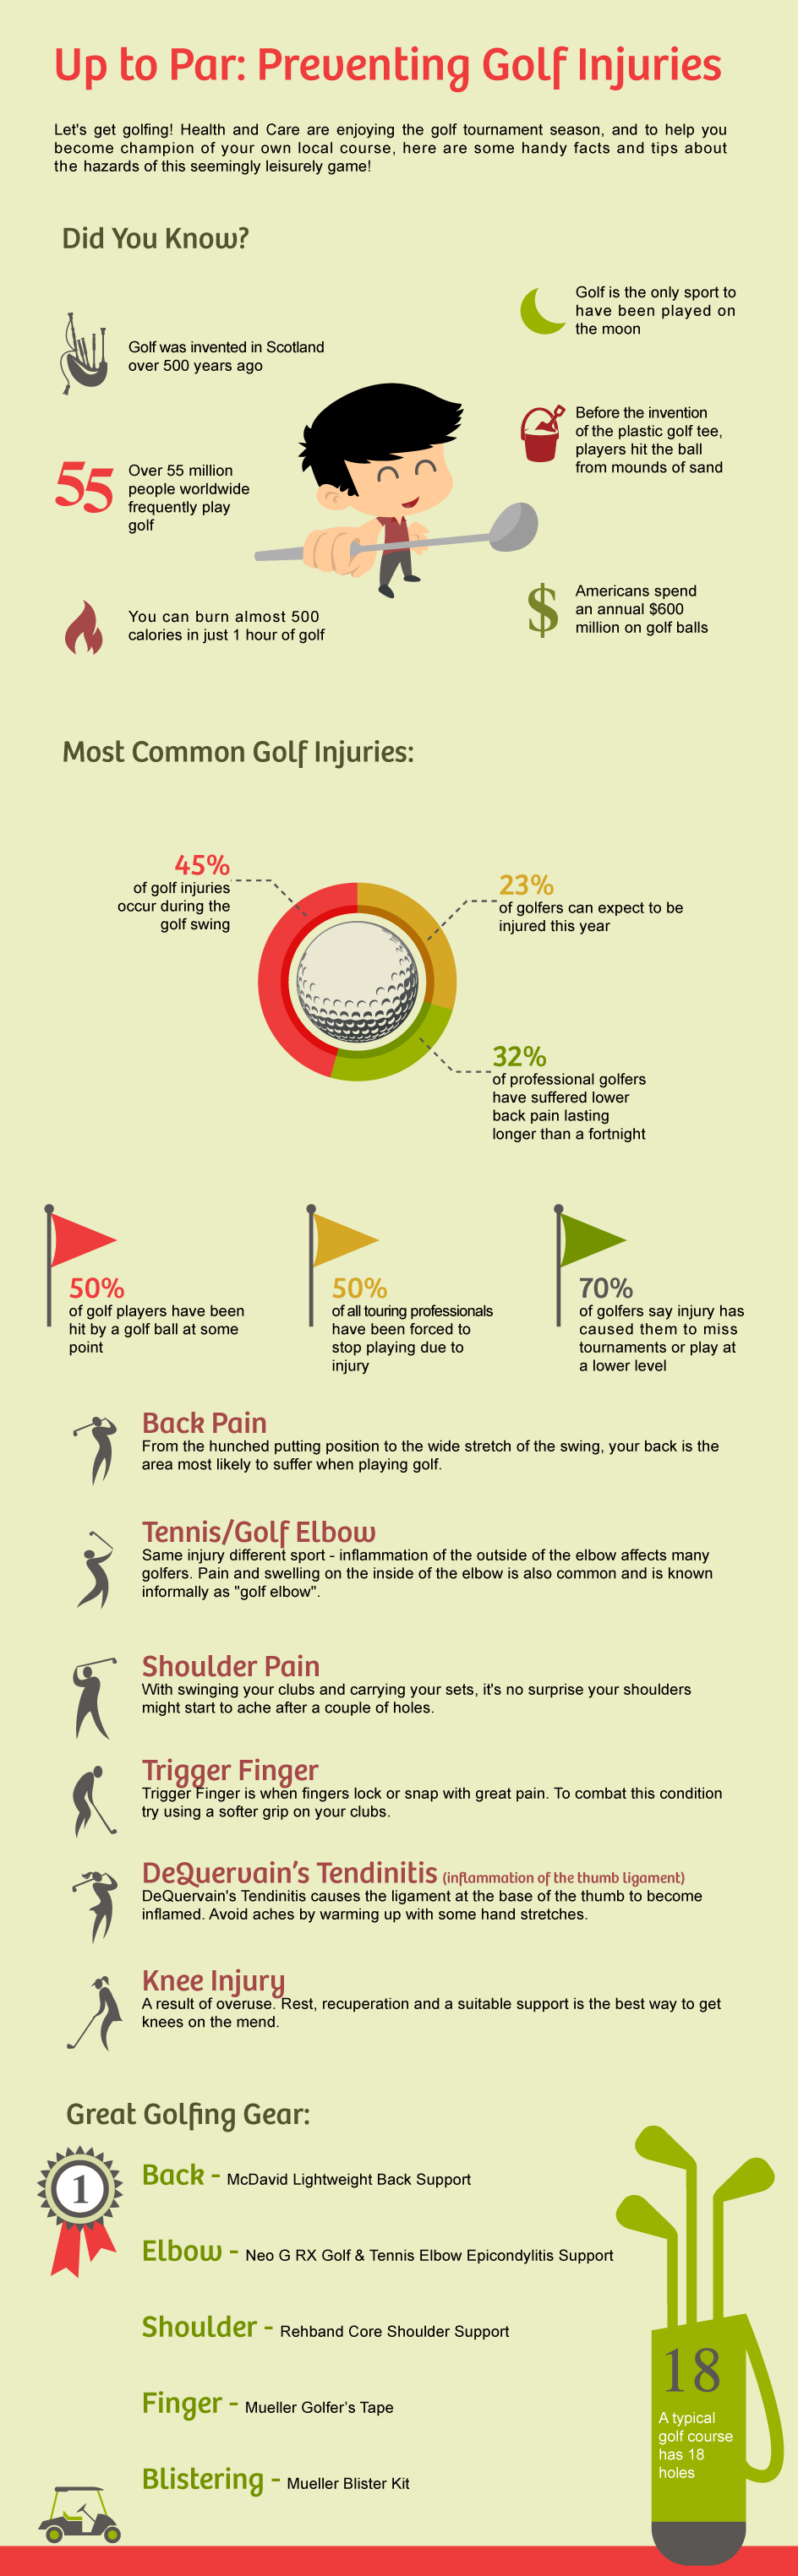 Find Out More About How to Avoid Golf Injuries